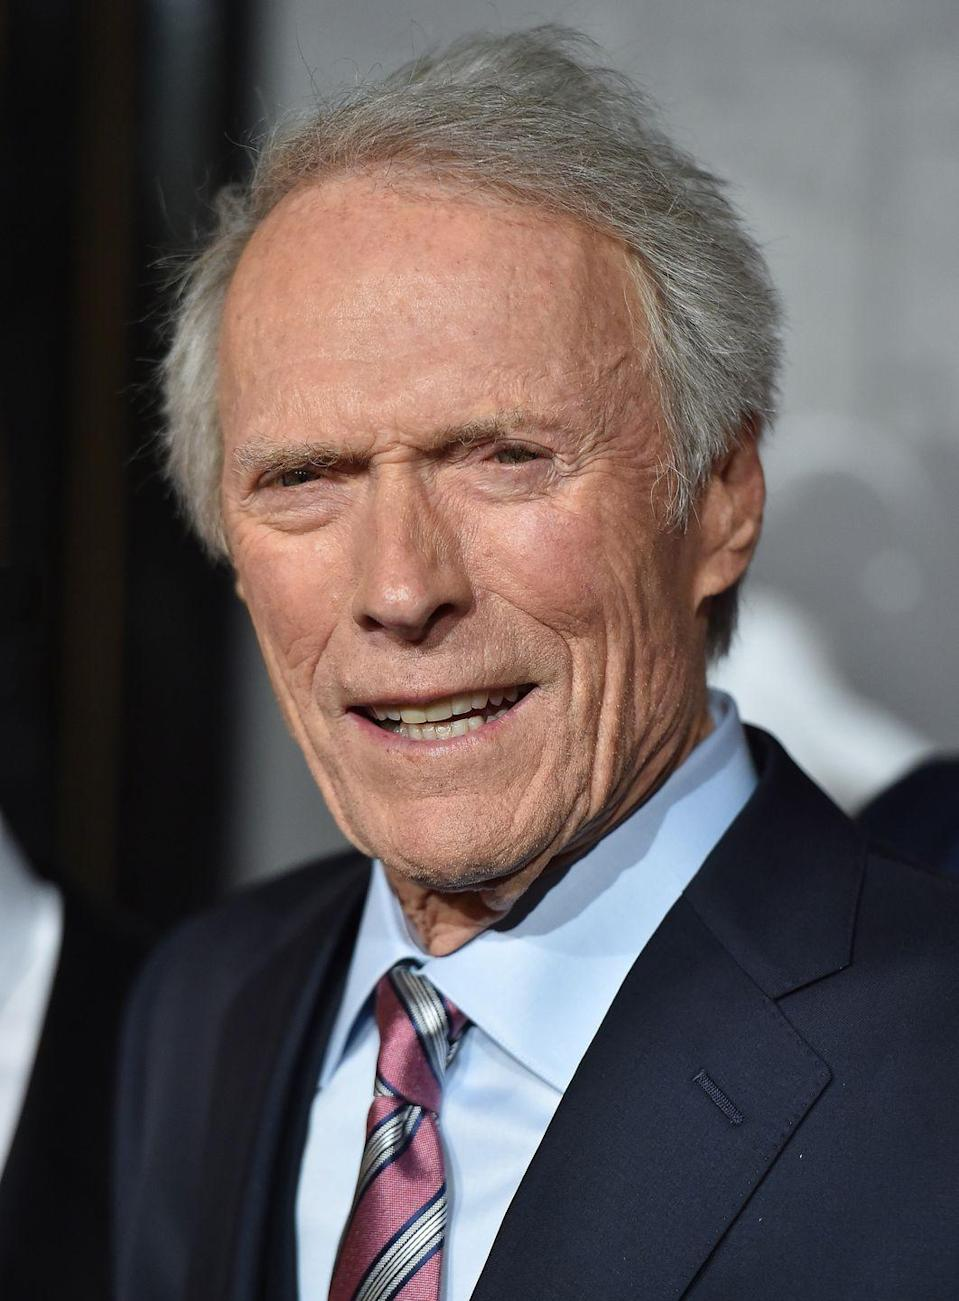 <p>Even as he approaches 90, the actor/director continues making fantastic drama. His most recent film <em>The Mule </em>is no exception. </p>